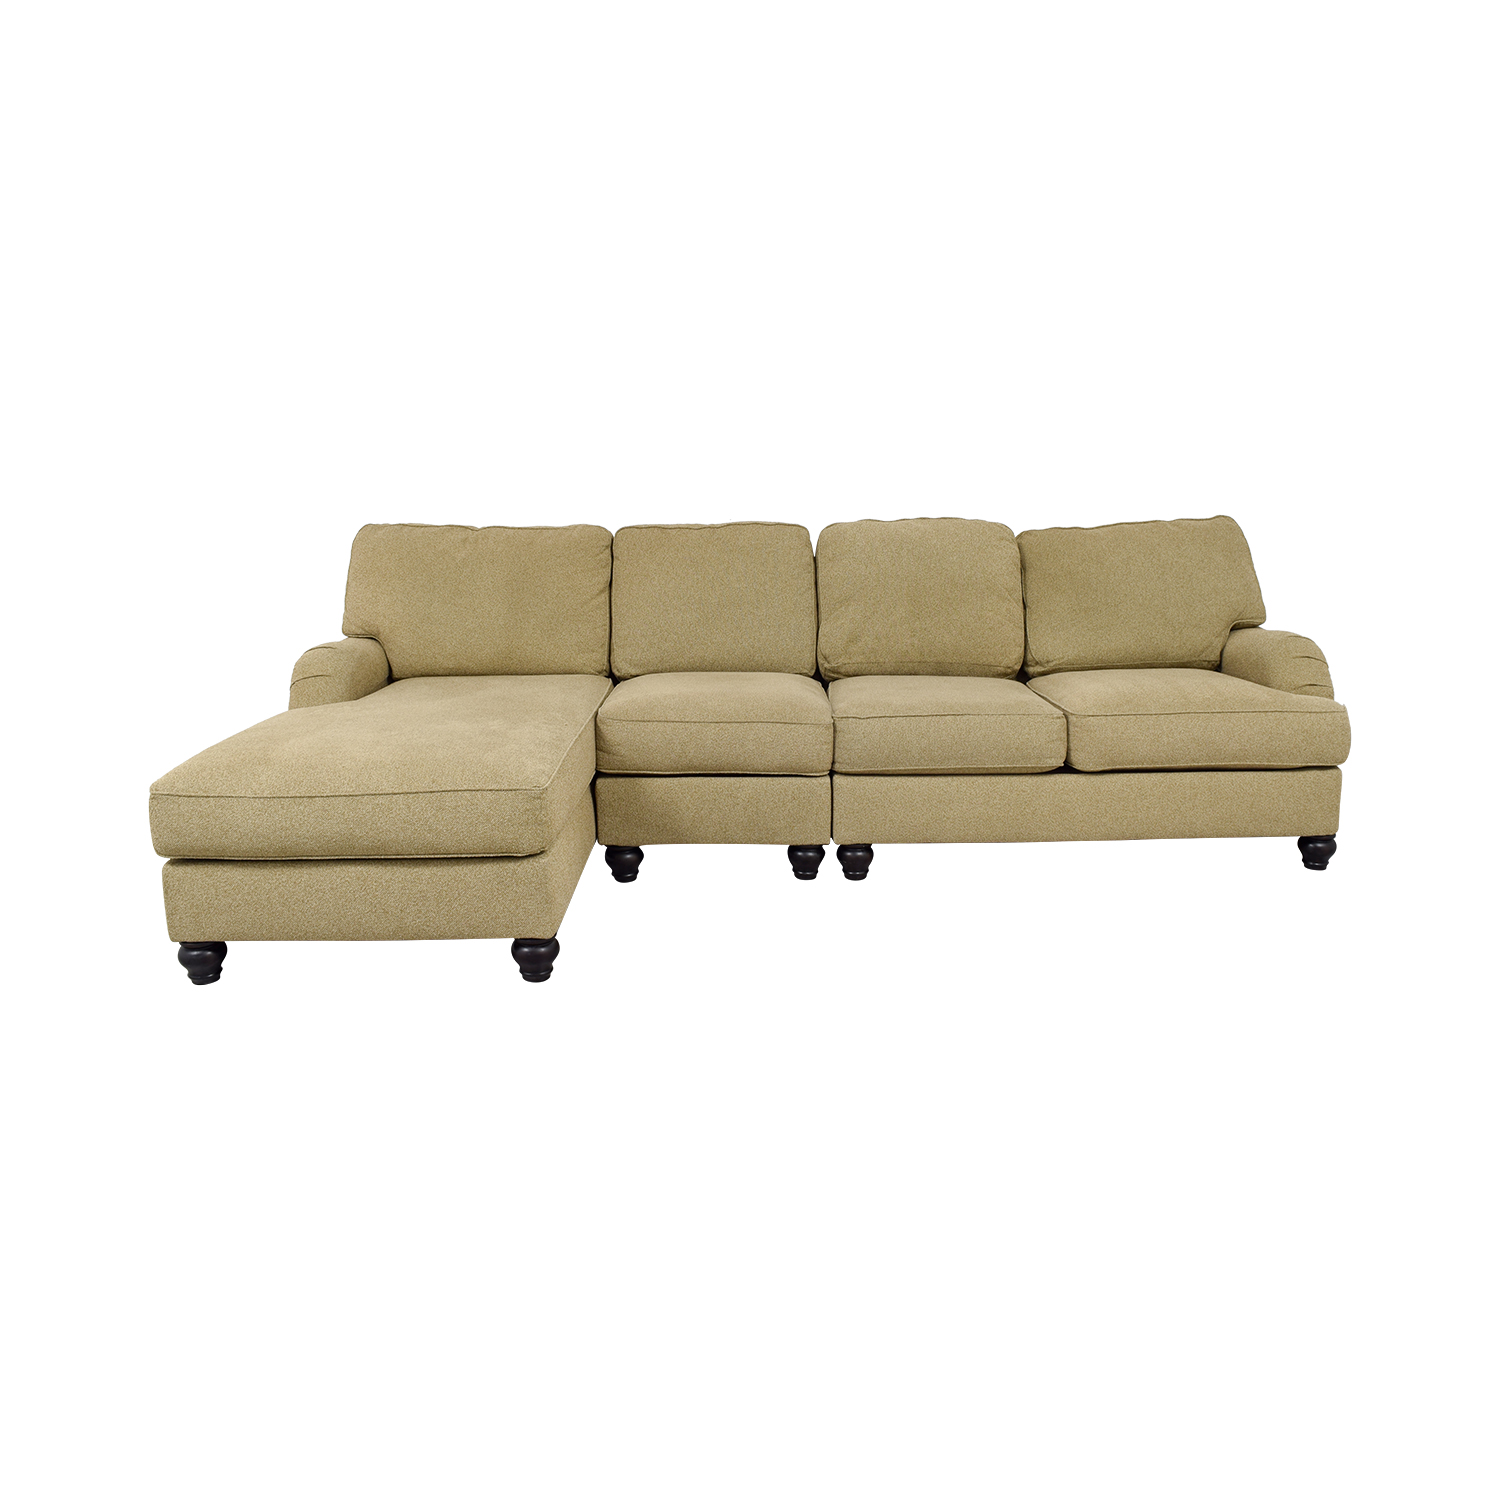 70 Off Ashley Furniture Ashley S Furniture Tan Sectional Sofa Sofas